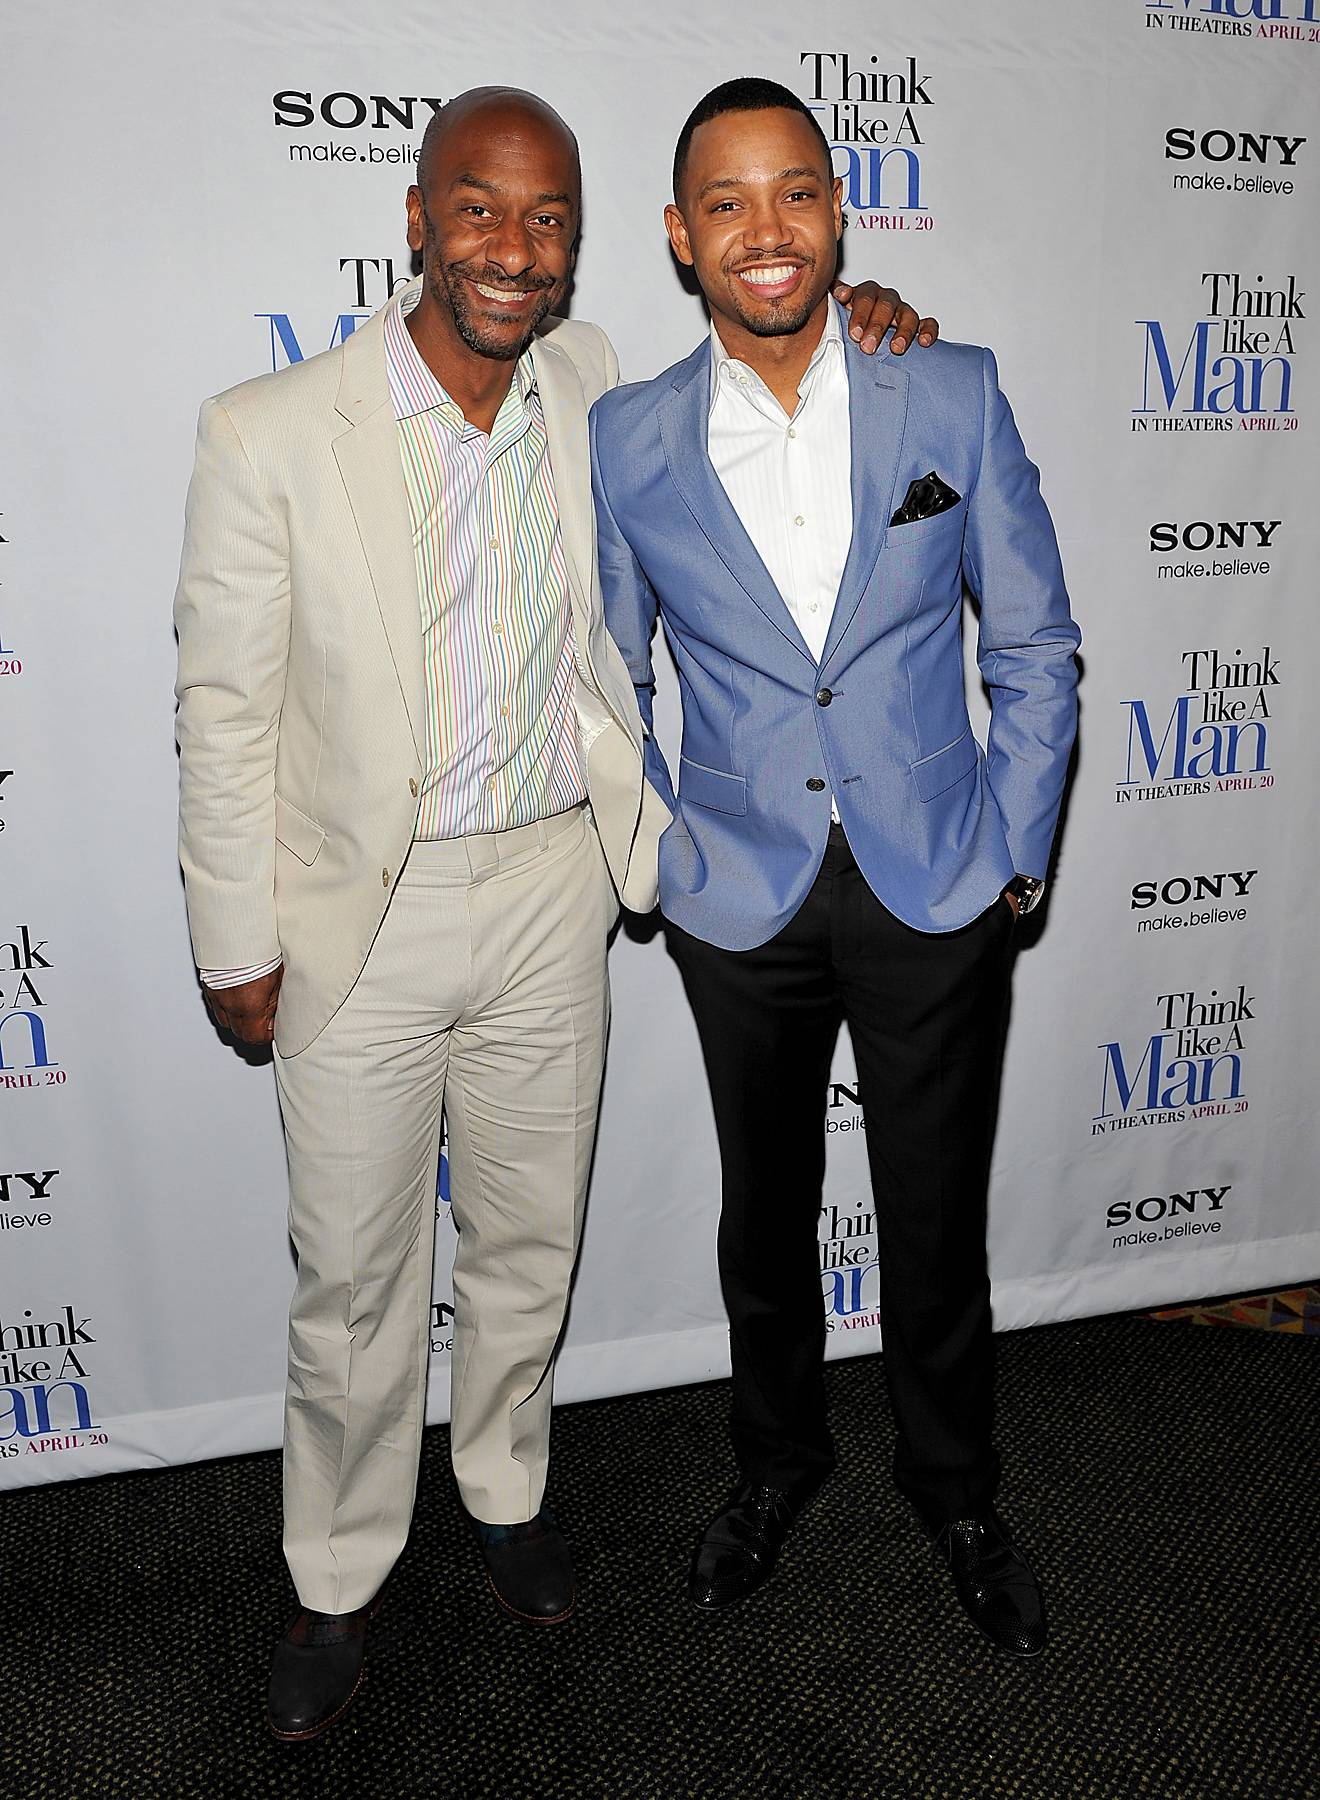 Tailor Made - Terrence J takes a pic with BET's own Stephen G. Hill at the premiere of Think Like A Man. Lookin' dapper gents!(Photo: Fernando Leon/Getty Images)